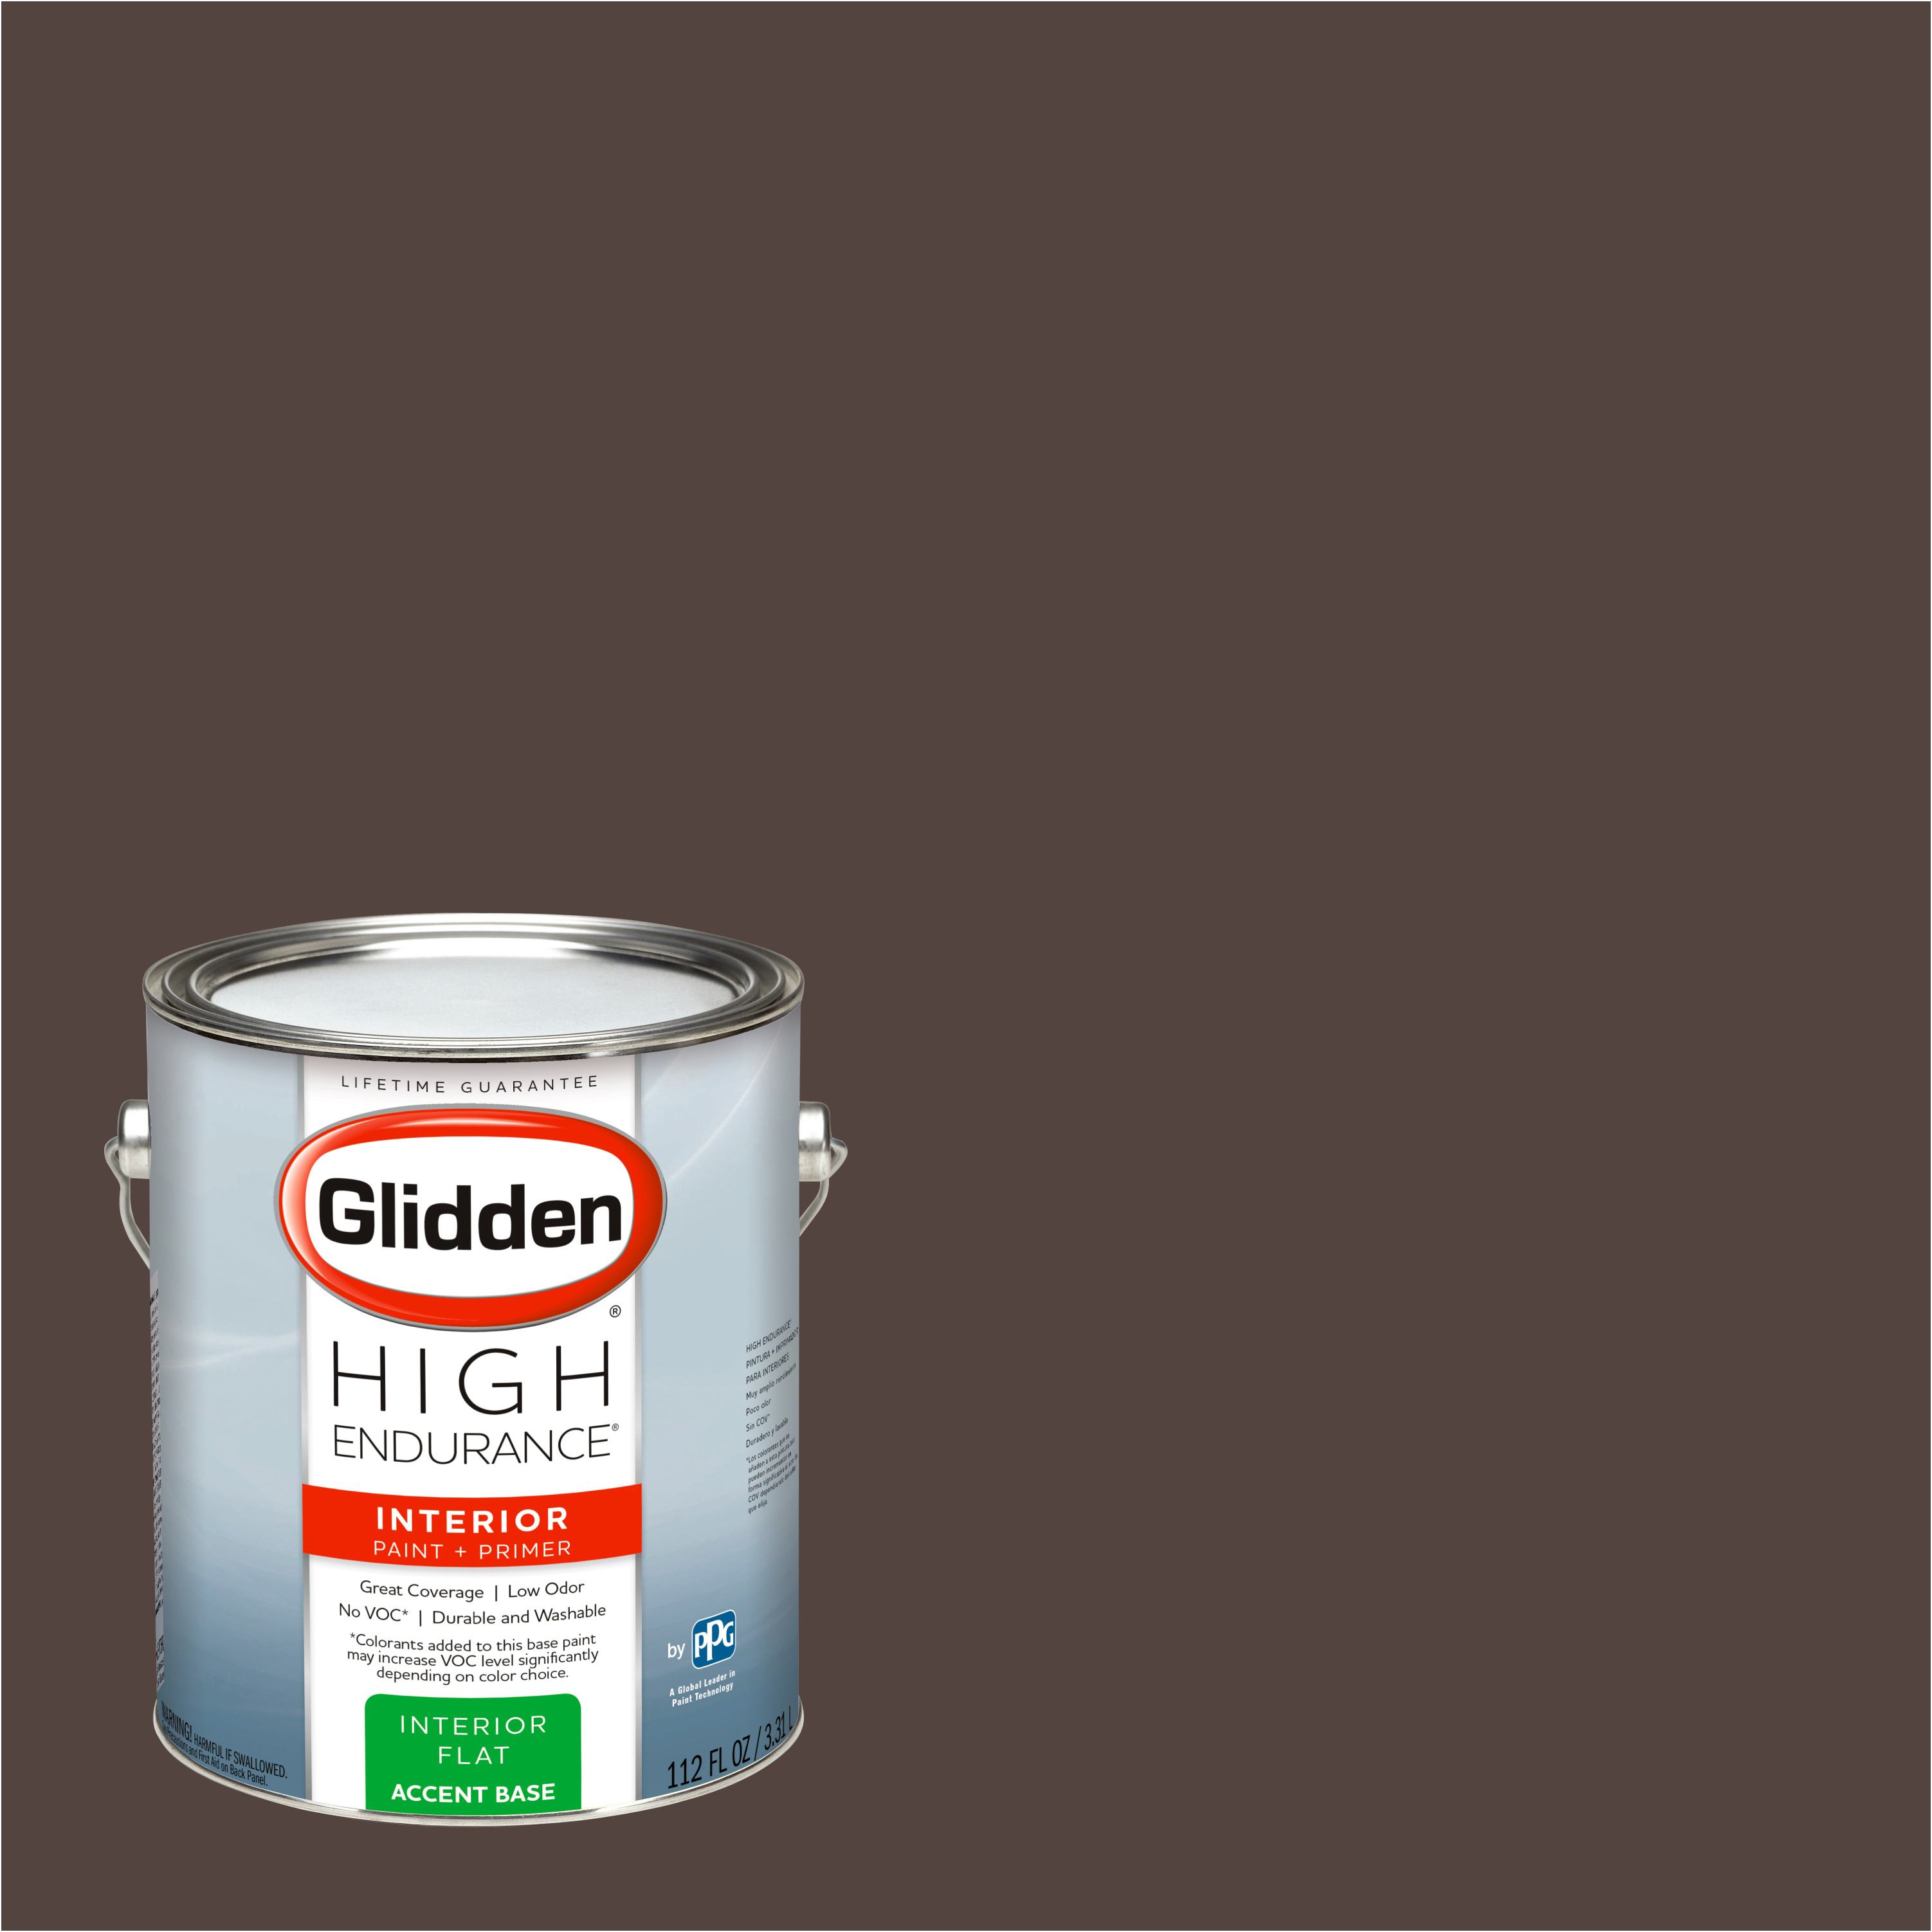 Glidden High Endurance, Interior Paint and Primer, Stewart House Brown, #50YR 06/081